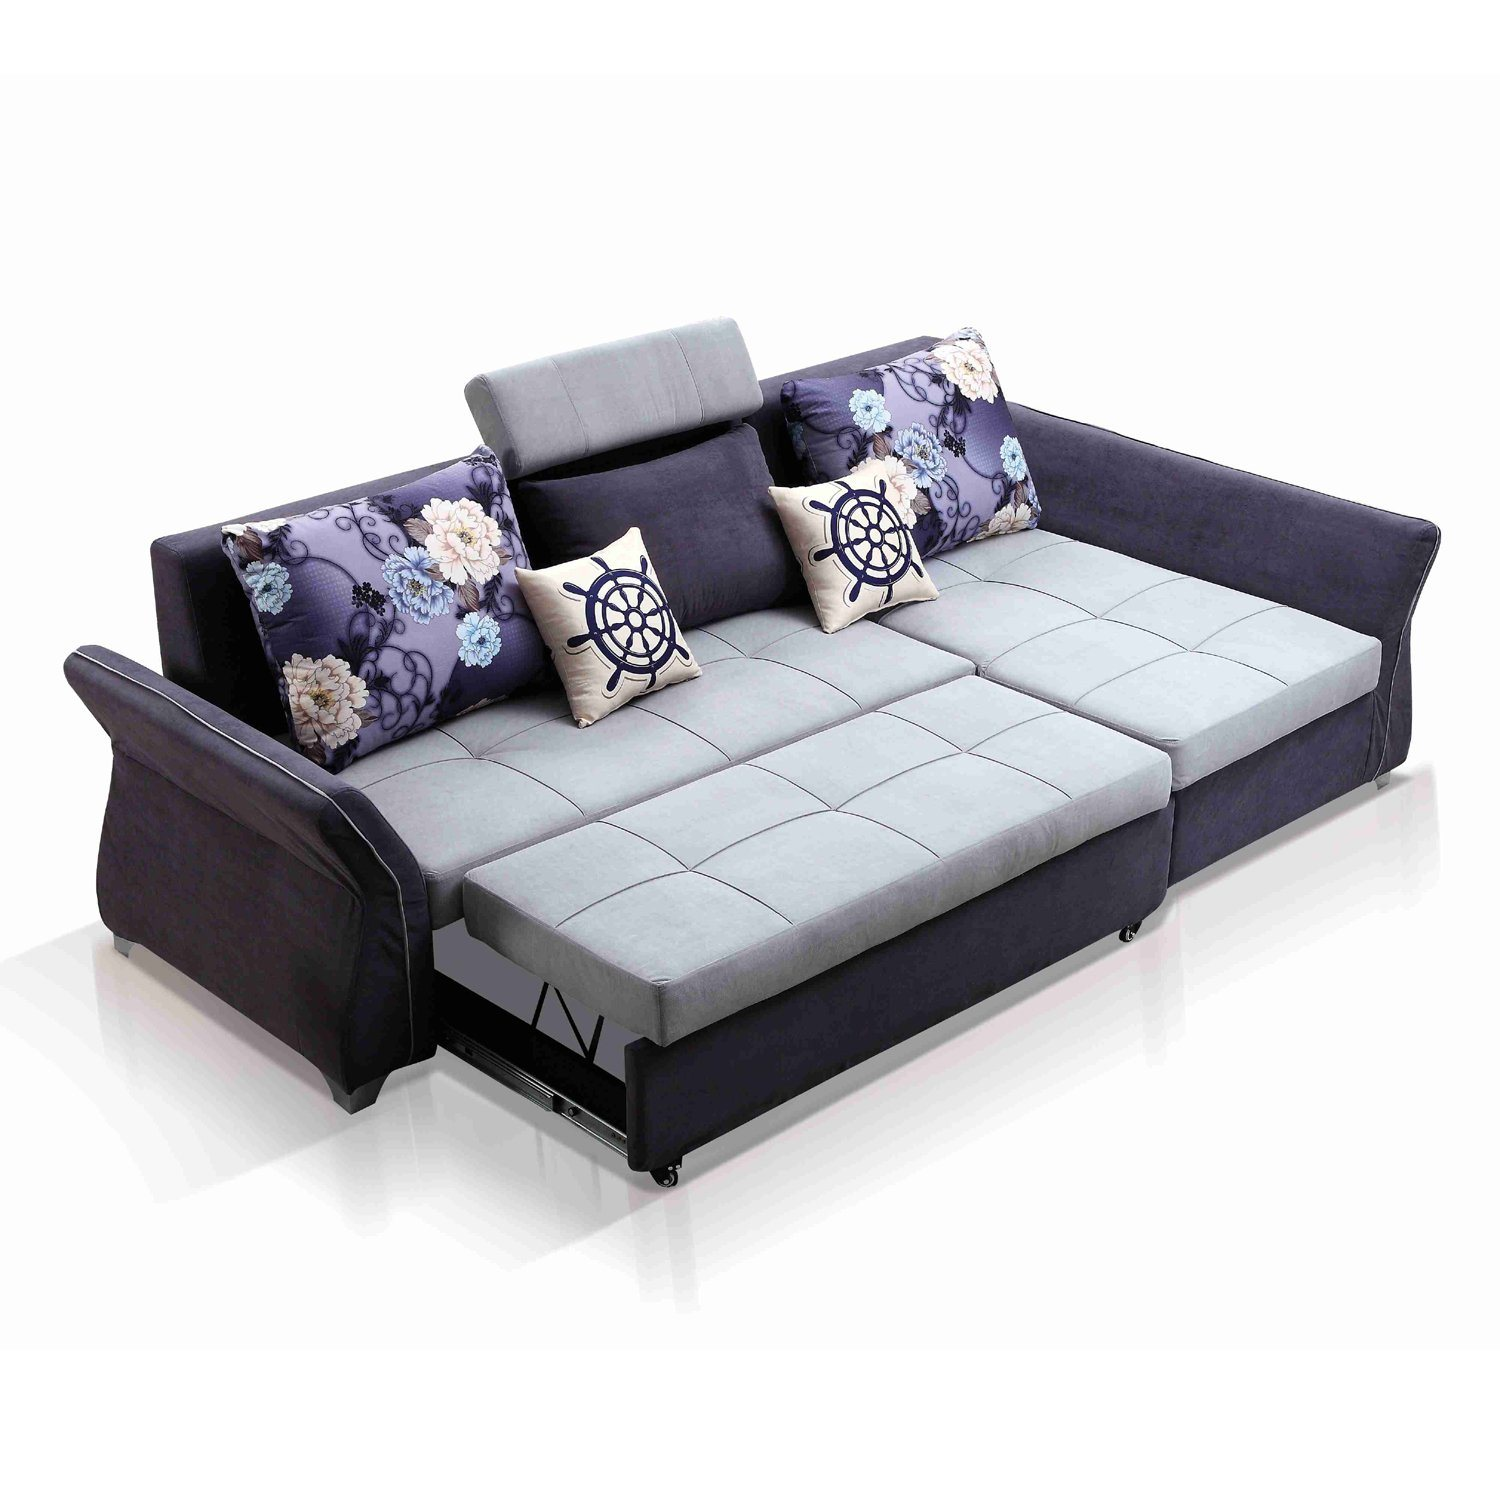 China L Shaped Sectional Sofa Cum Bed With Storage - China Fabric Sofa, L Shaped Sofa